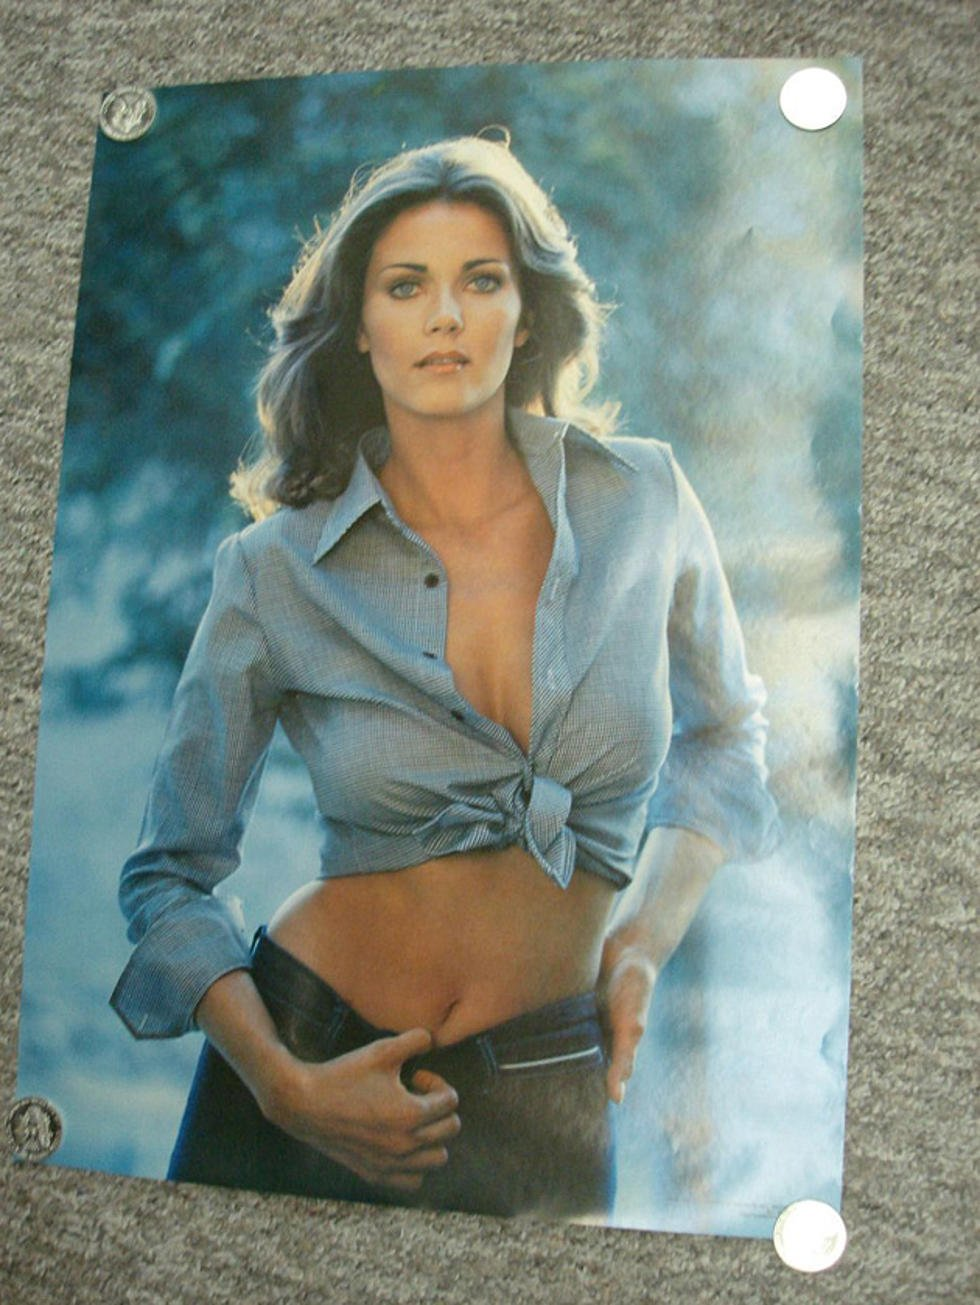 hottest posters of 70s and 80s